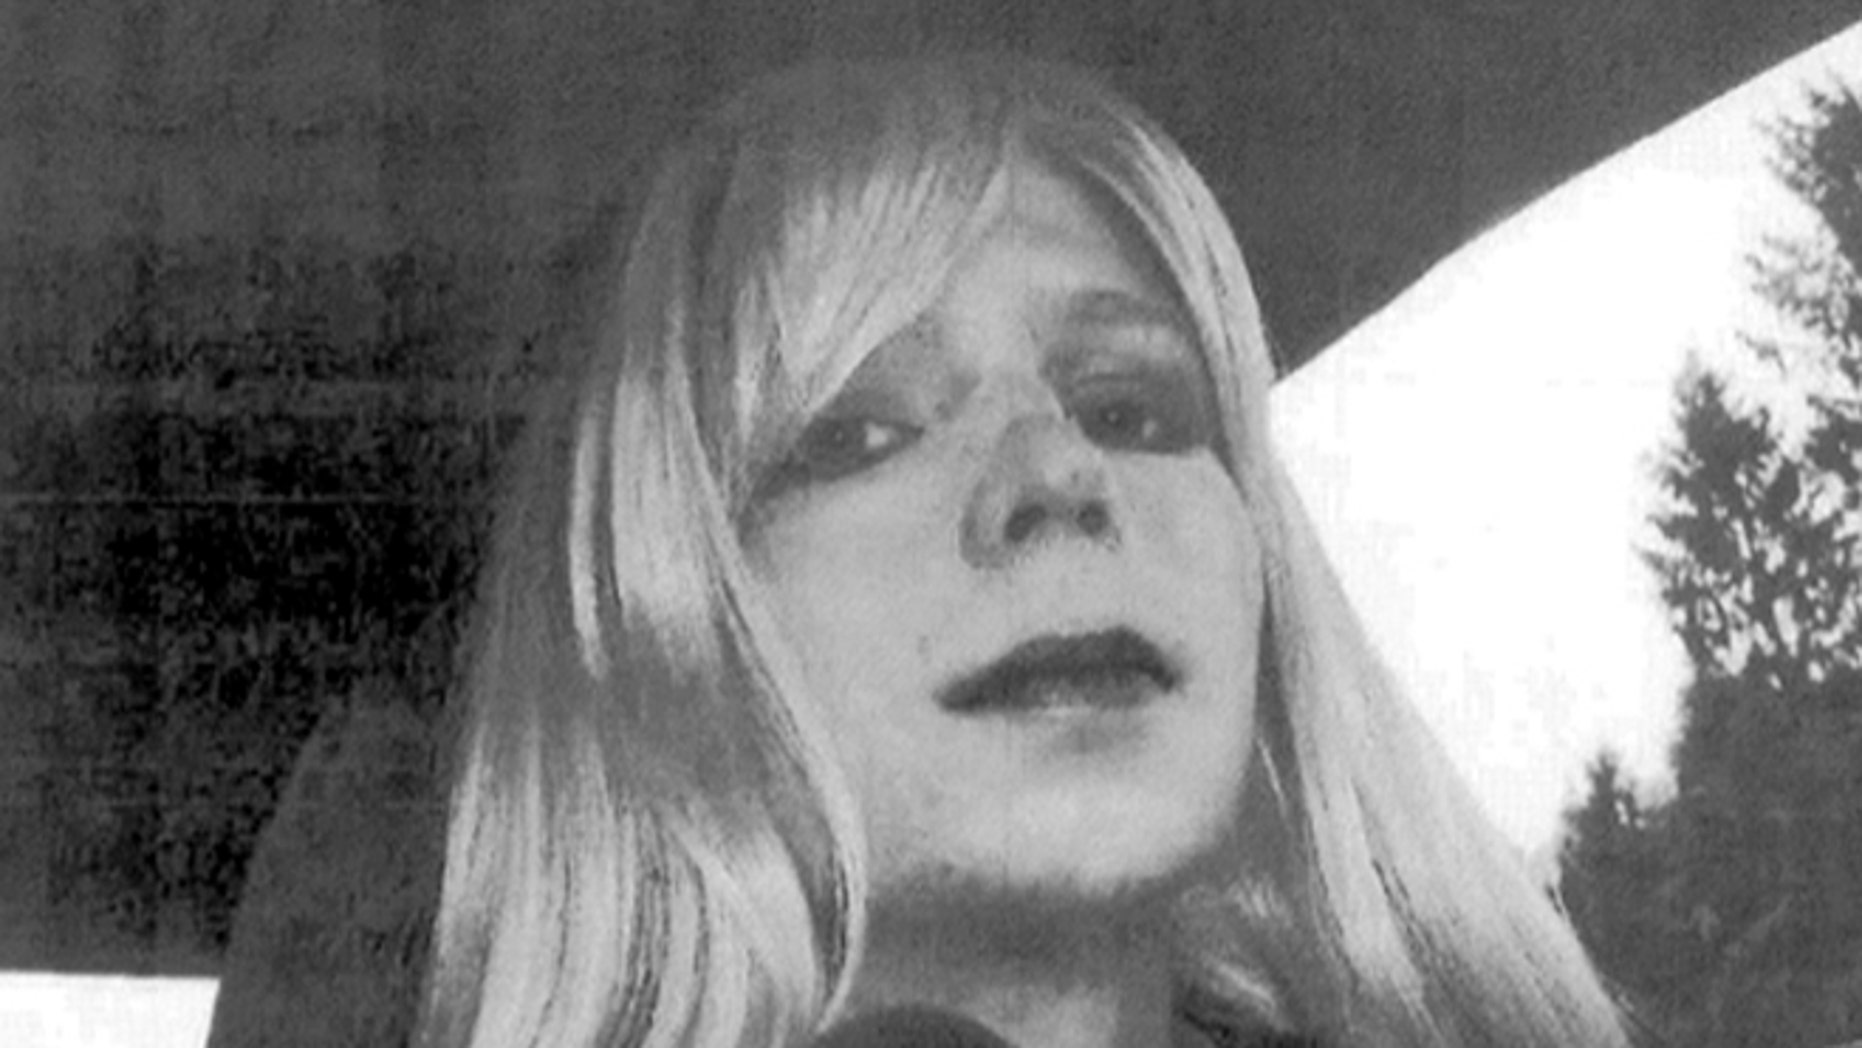 """In this undated photo provided by the U.S. Army, Pfc. Chelsea Manning poses for a photo wearing a wig and lipstick. Manningemailed his militarytherapist the photo with a letter titled, """"My problem,"""" in which he described his issues with gender identity and his hope that a military career would """"get rid of it."""" (AP/U.S. Army)"""